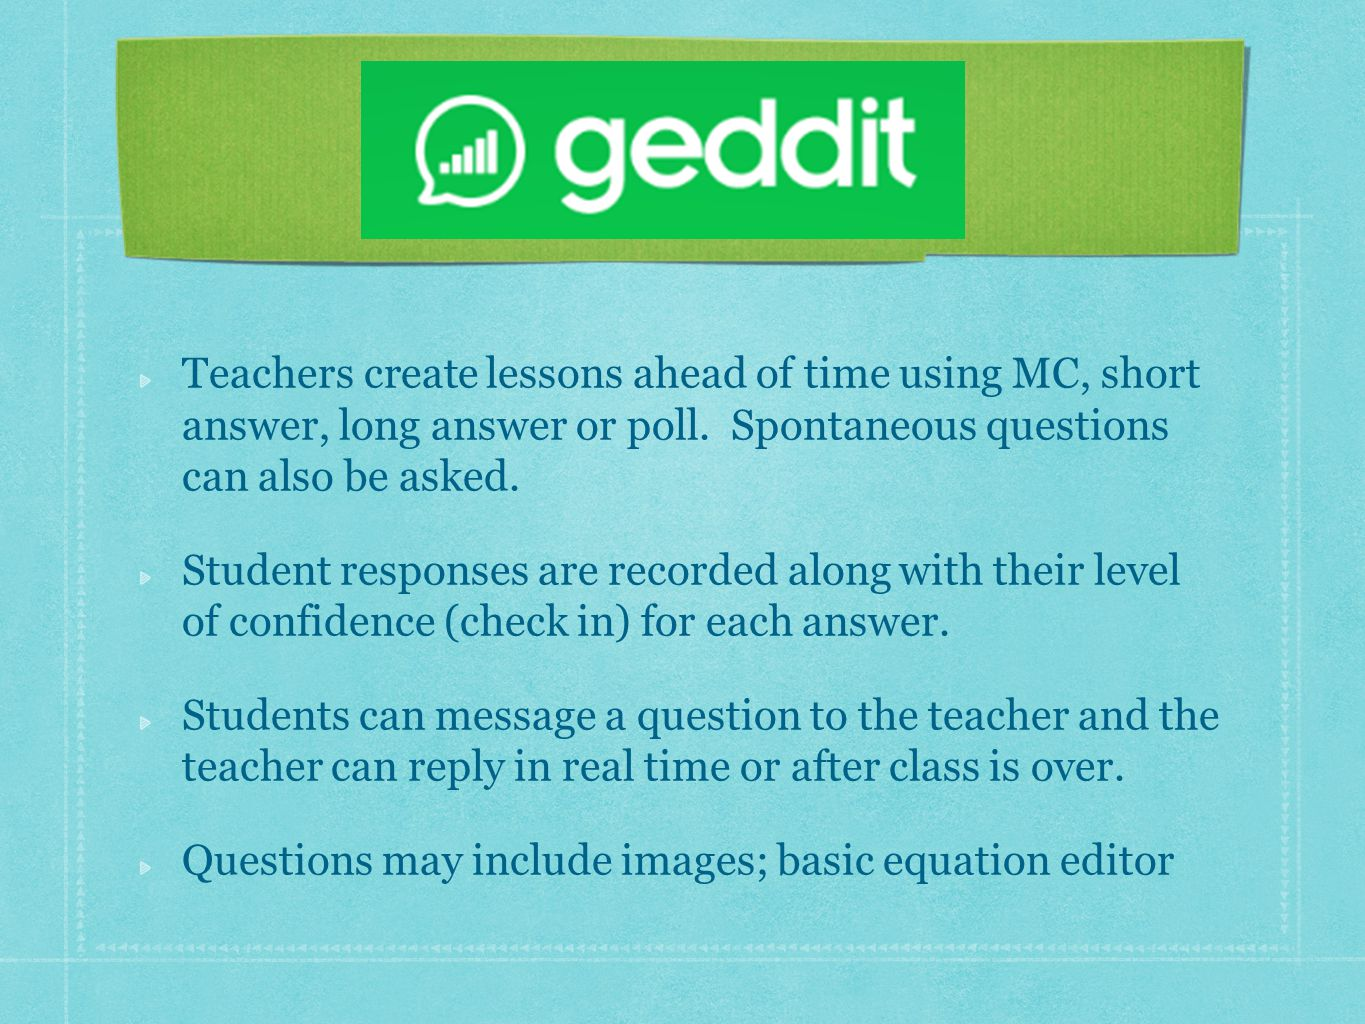 Teachers create lessons ahead of time using MC, short answer, long answer or poll.